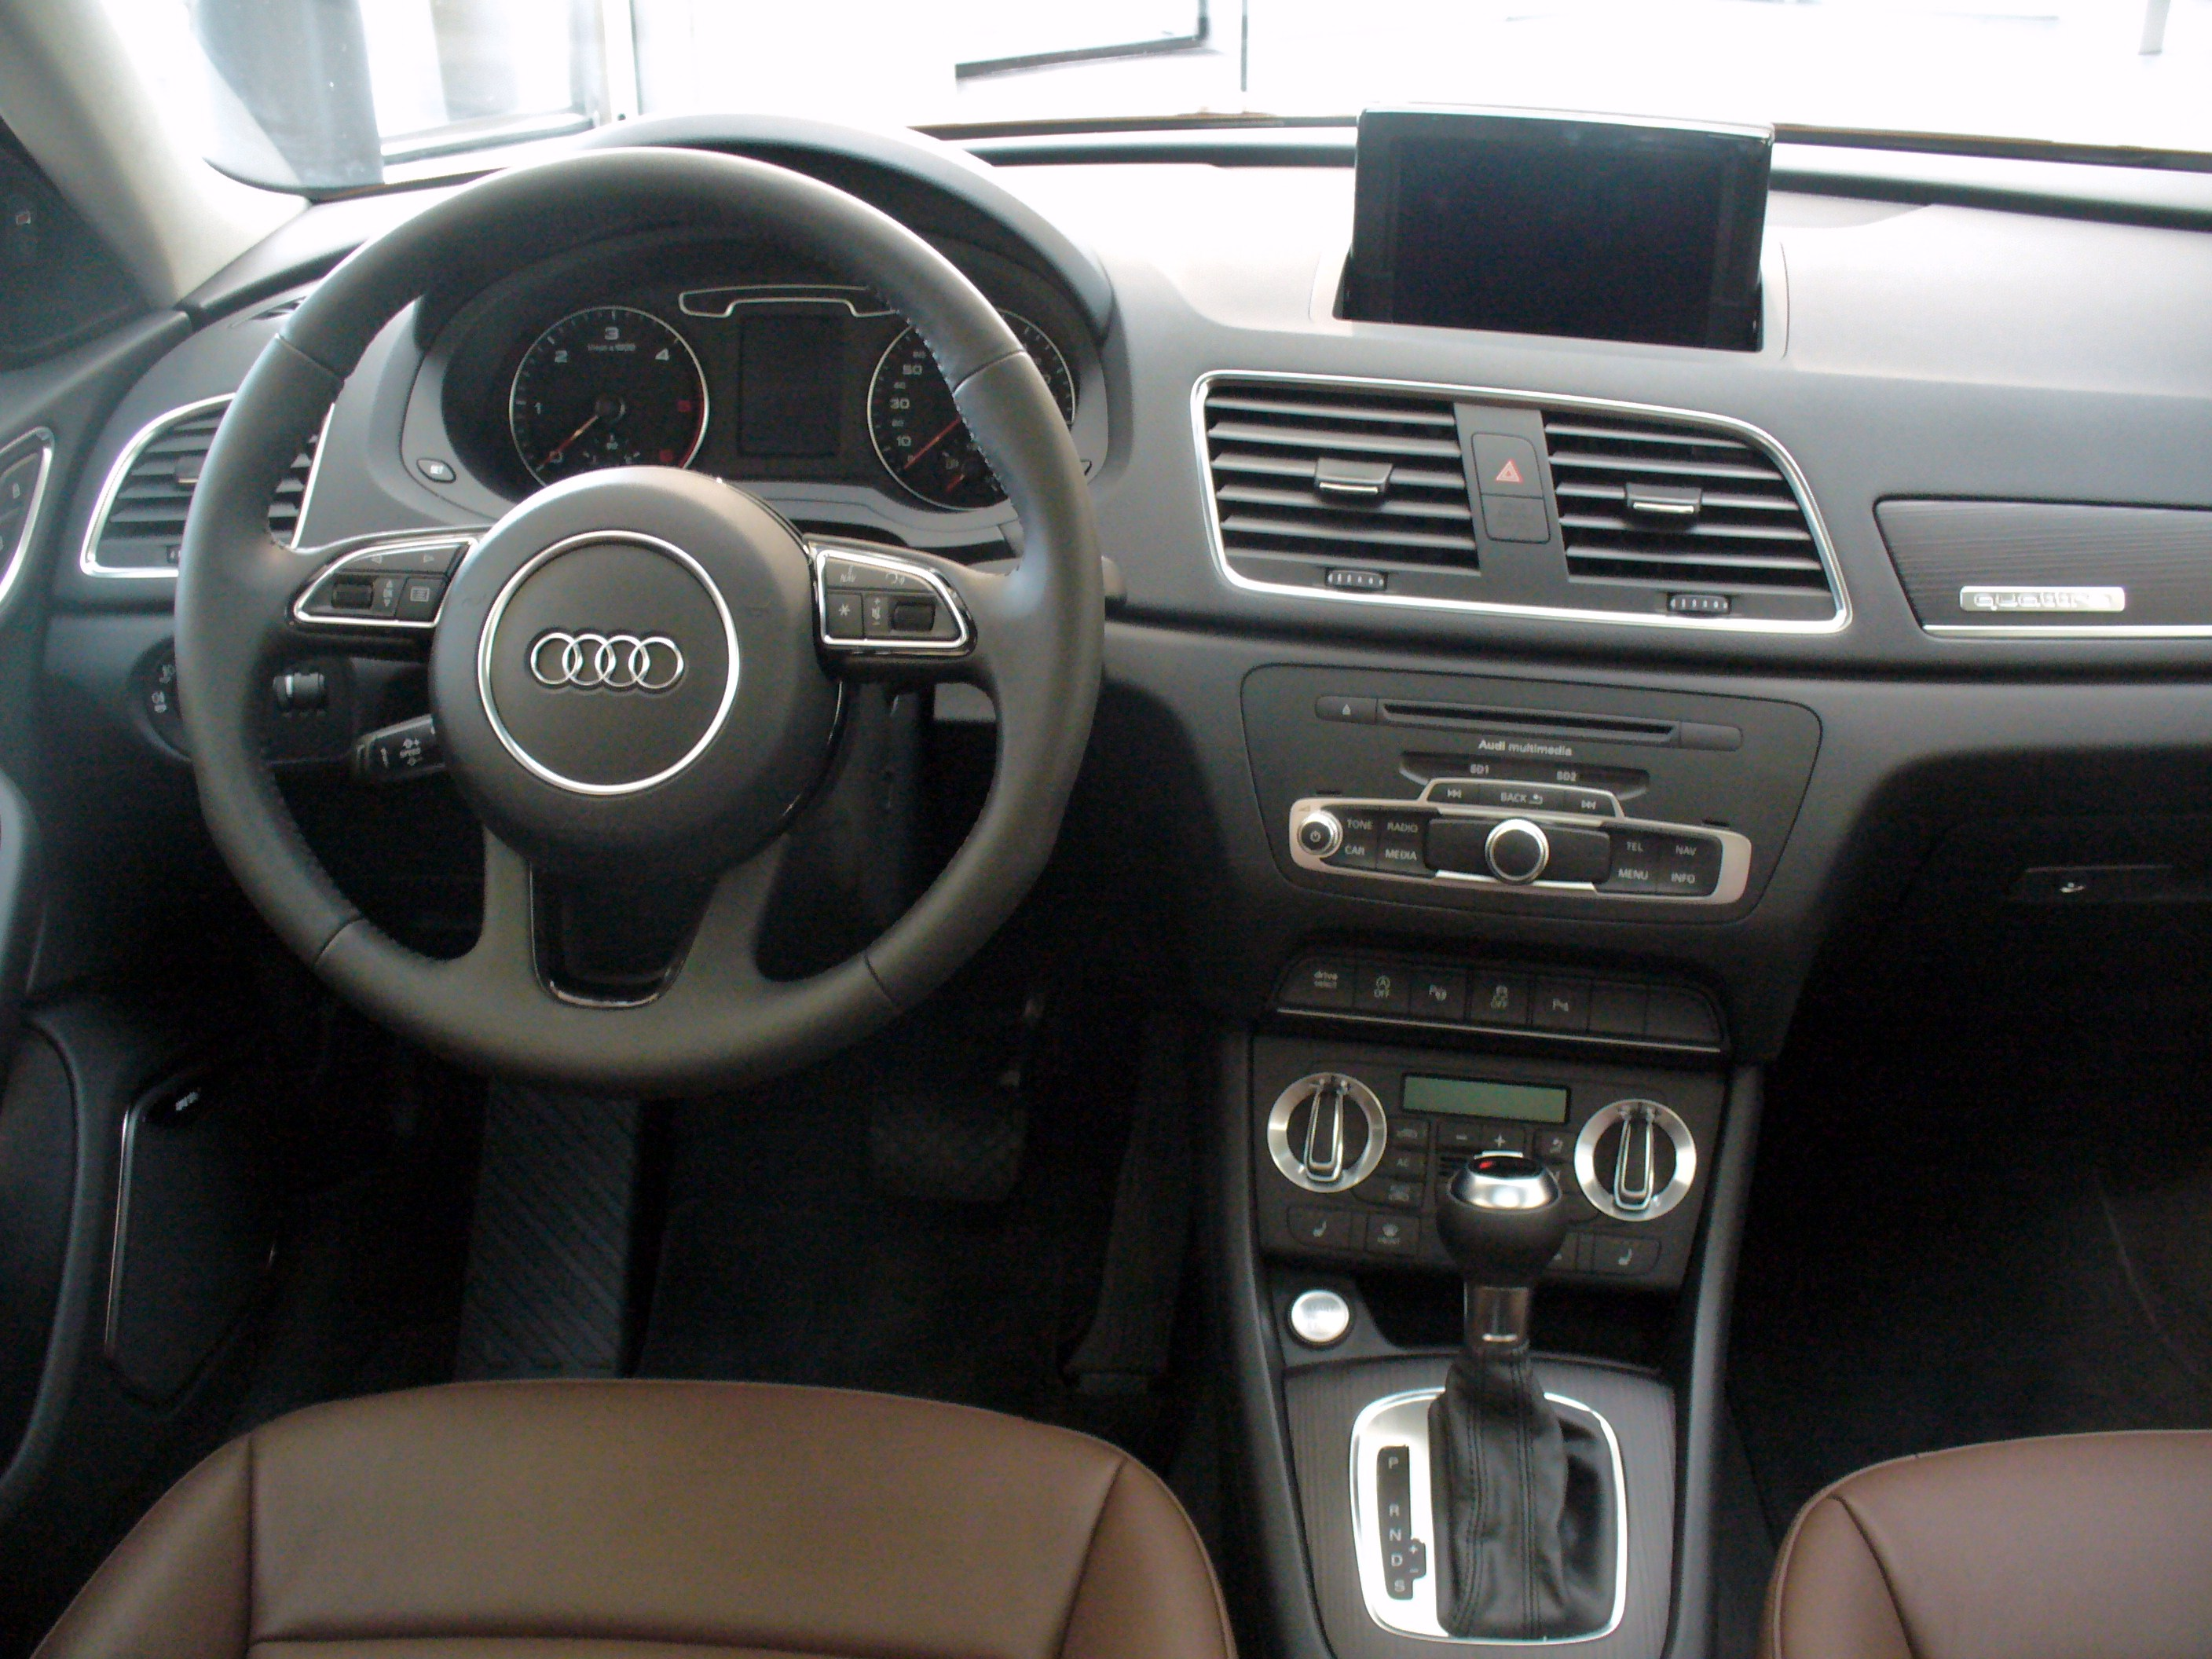 file audi q3 2 0 tdi quattro s tronic samoaorange interieur jpg wikimedia commons. Black Bedroom Furniture Sets. Home Design Ideas